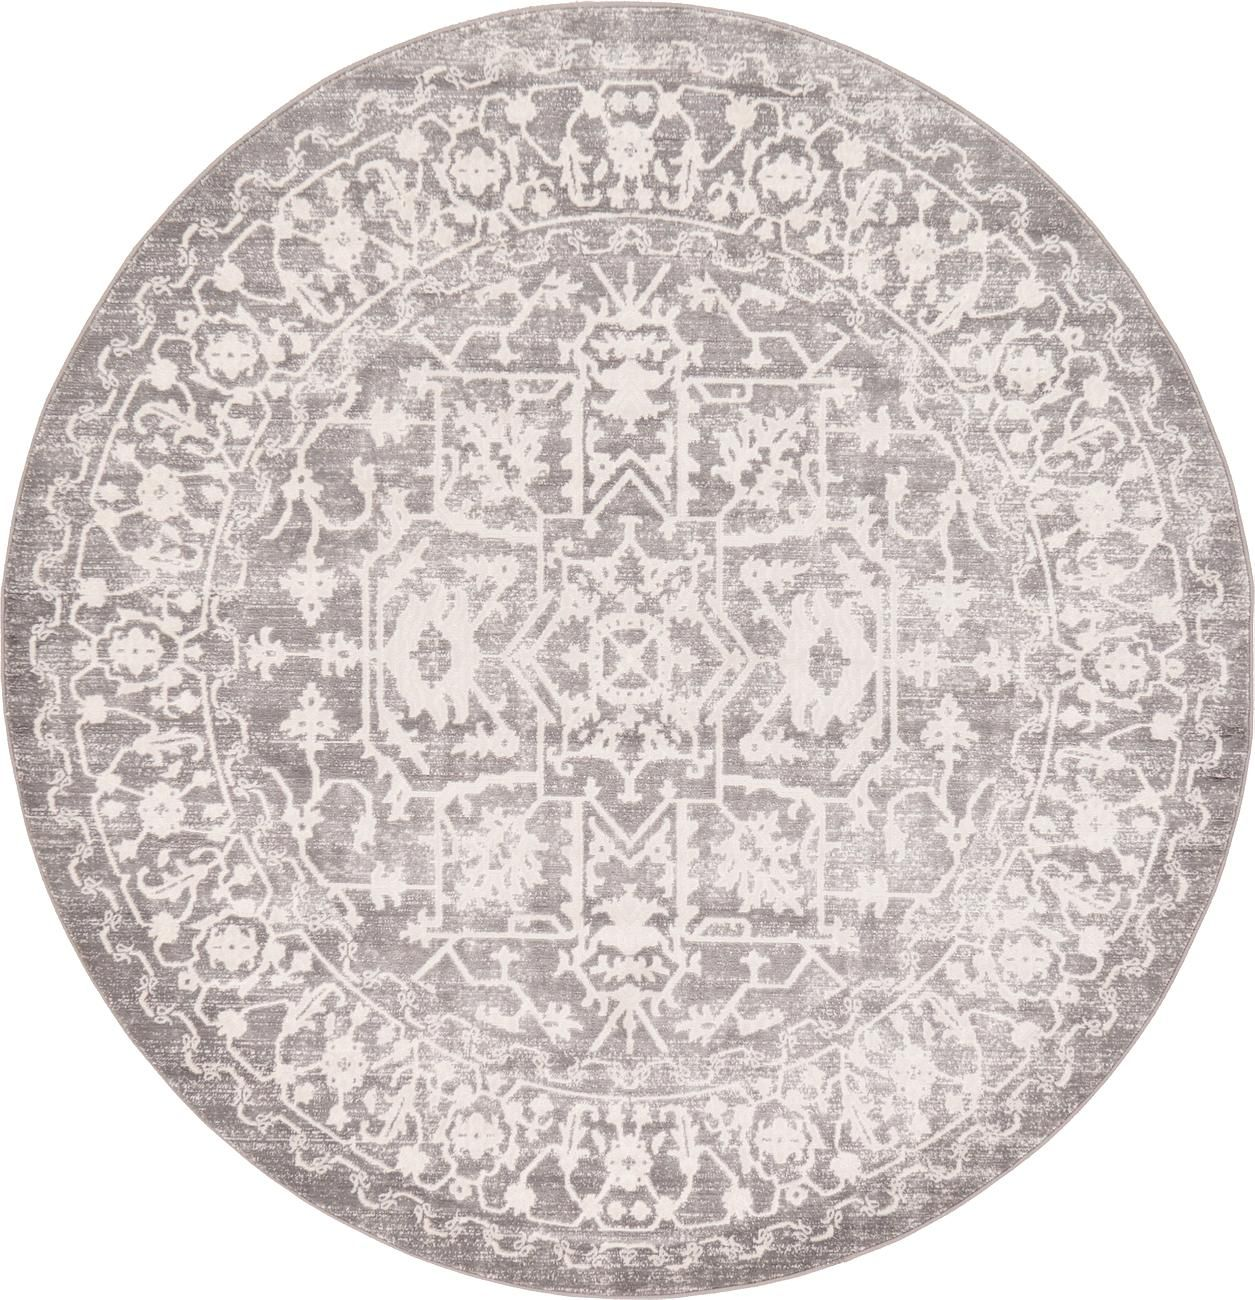 Light Gray 6 X New Vintage Round Rug Area Rugs Erugs 199